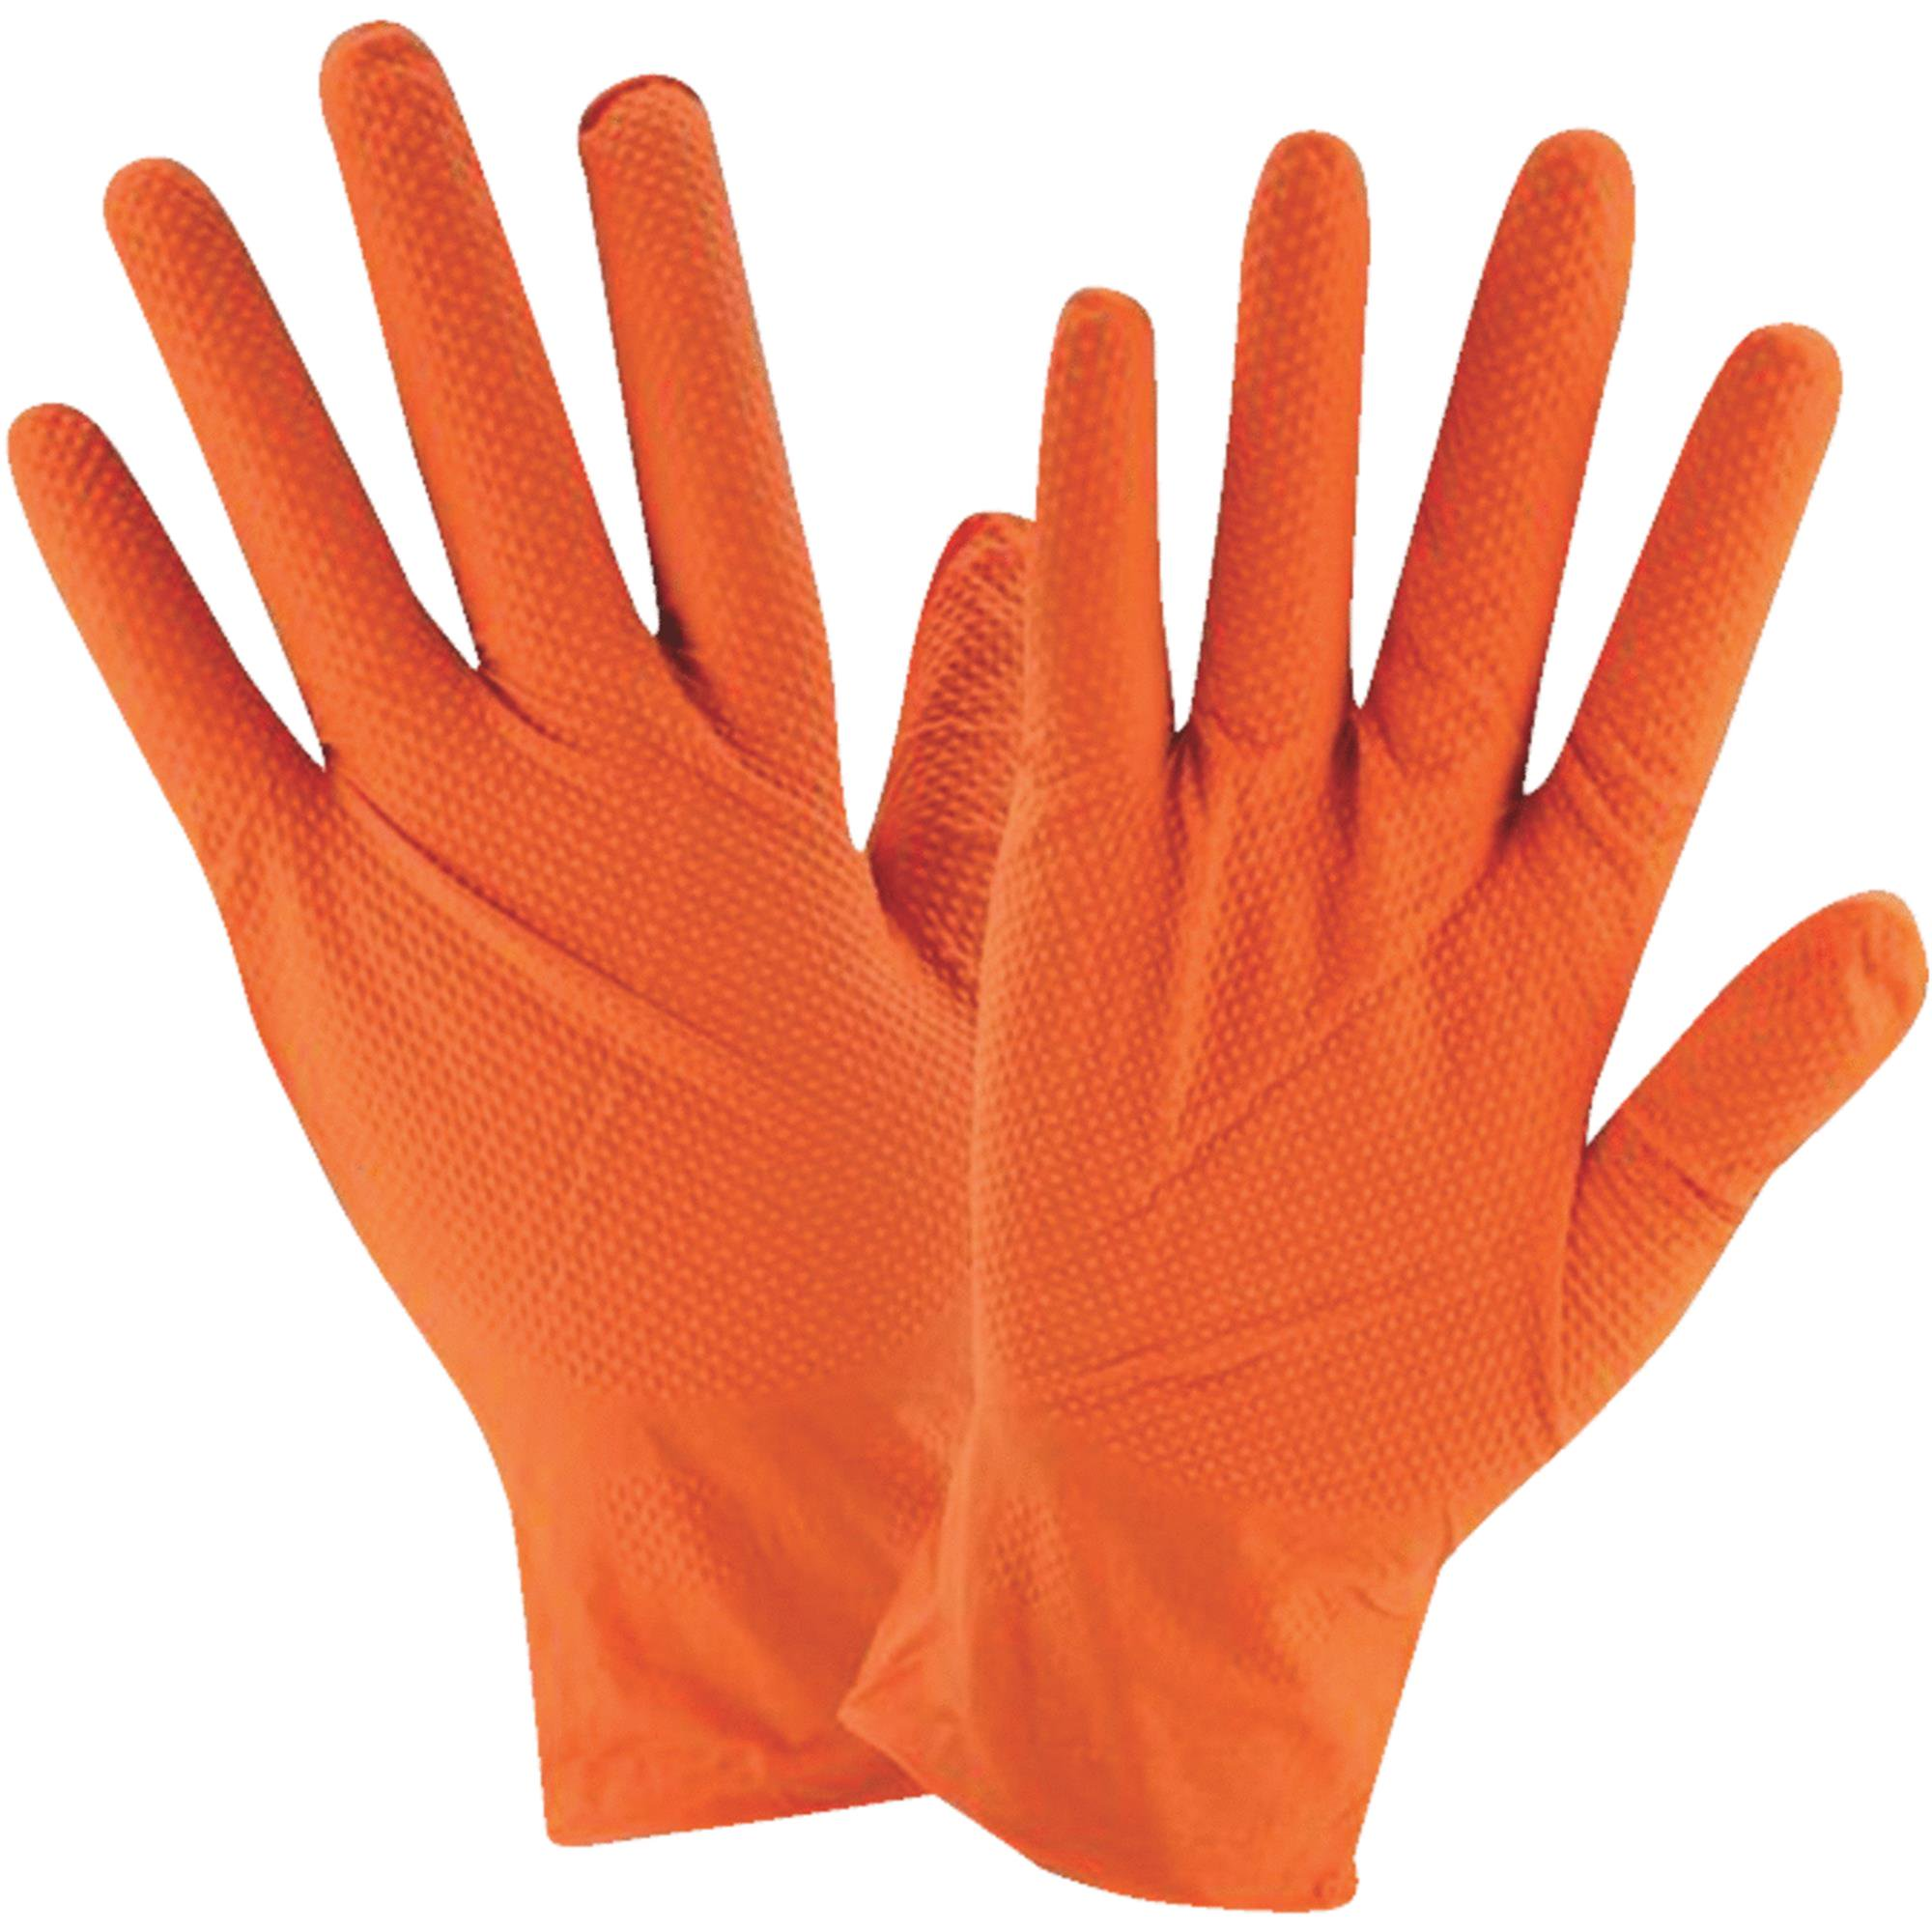 West Chester Protective Gear Posi Shield Hi Vis Industrial Grade Nitrile Disposable Glove